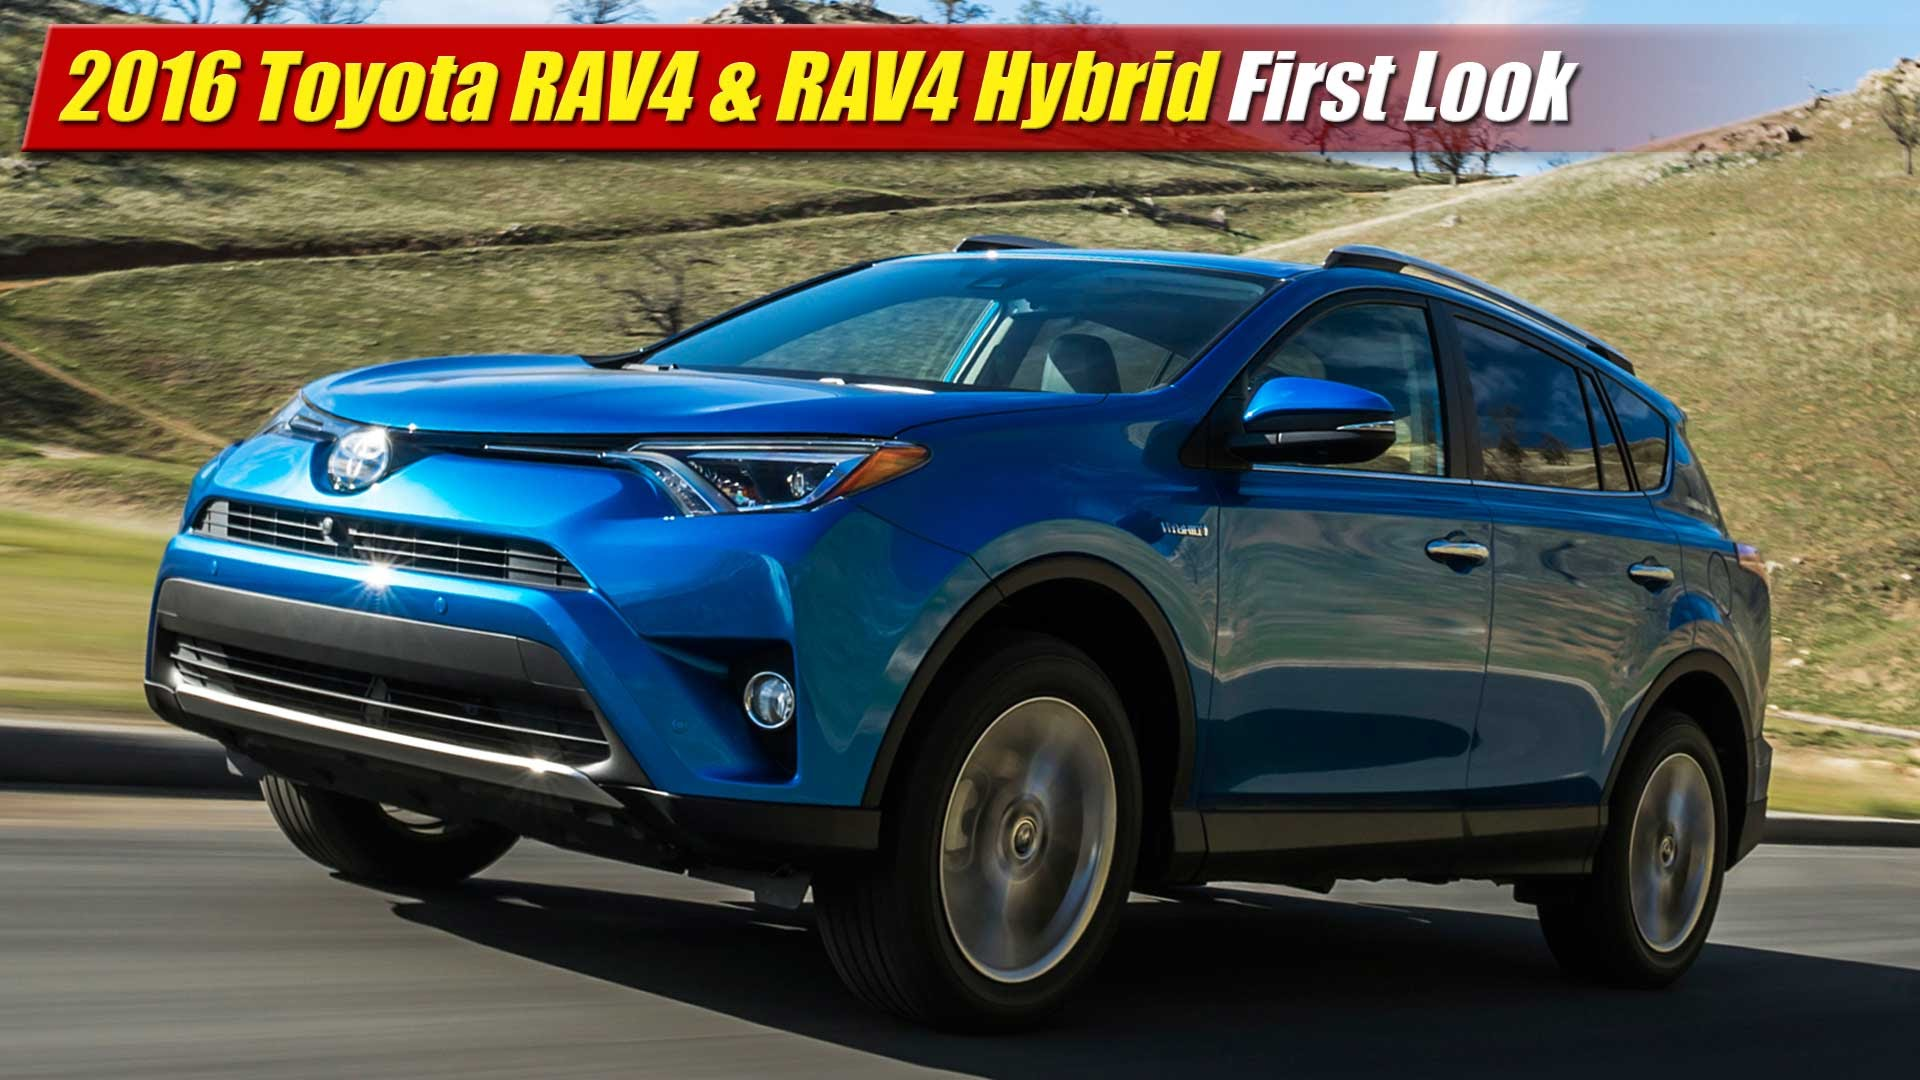 First Look: 2016 Toyota RAV4 & RAV4 Hybrid